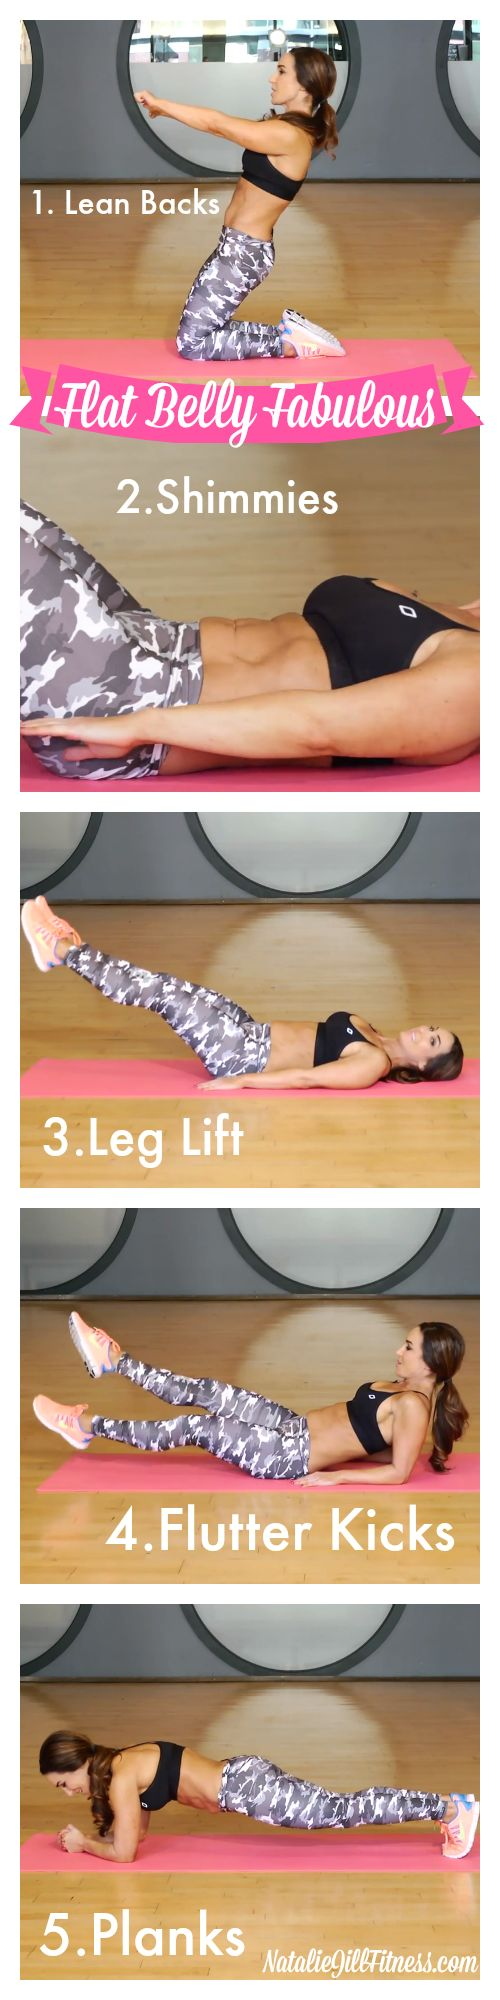 FLAT BELLY here we come! Make sure to keep these in your flat belly arsenal! Click the image above for more of my FAVORITE moves!: Belly Exercise, Flat Belly Diet, Belly Workouts, Flat Tummy Workout, Flat Stomach Workout, Body Inspiration, Work Out, Flat